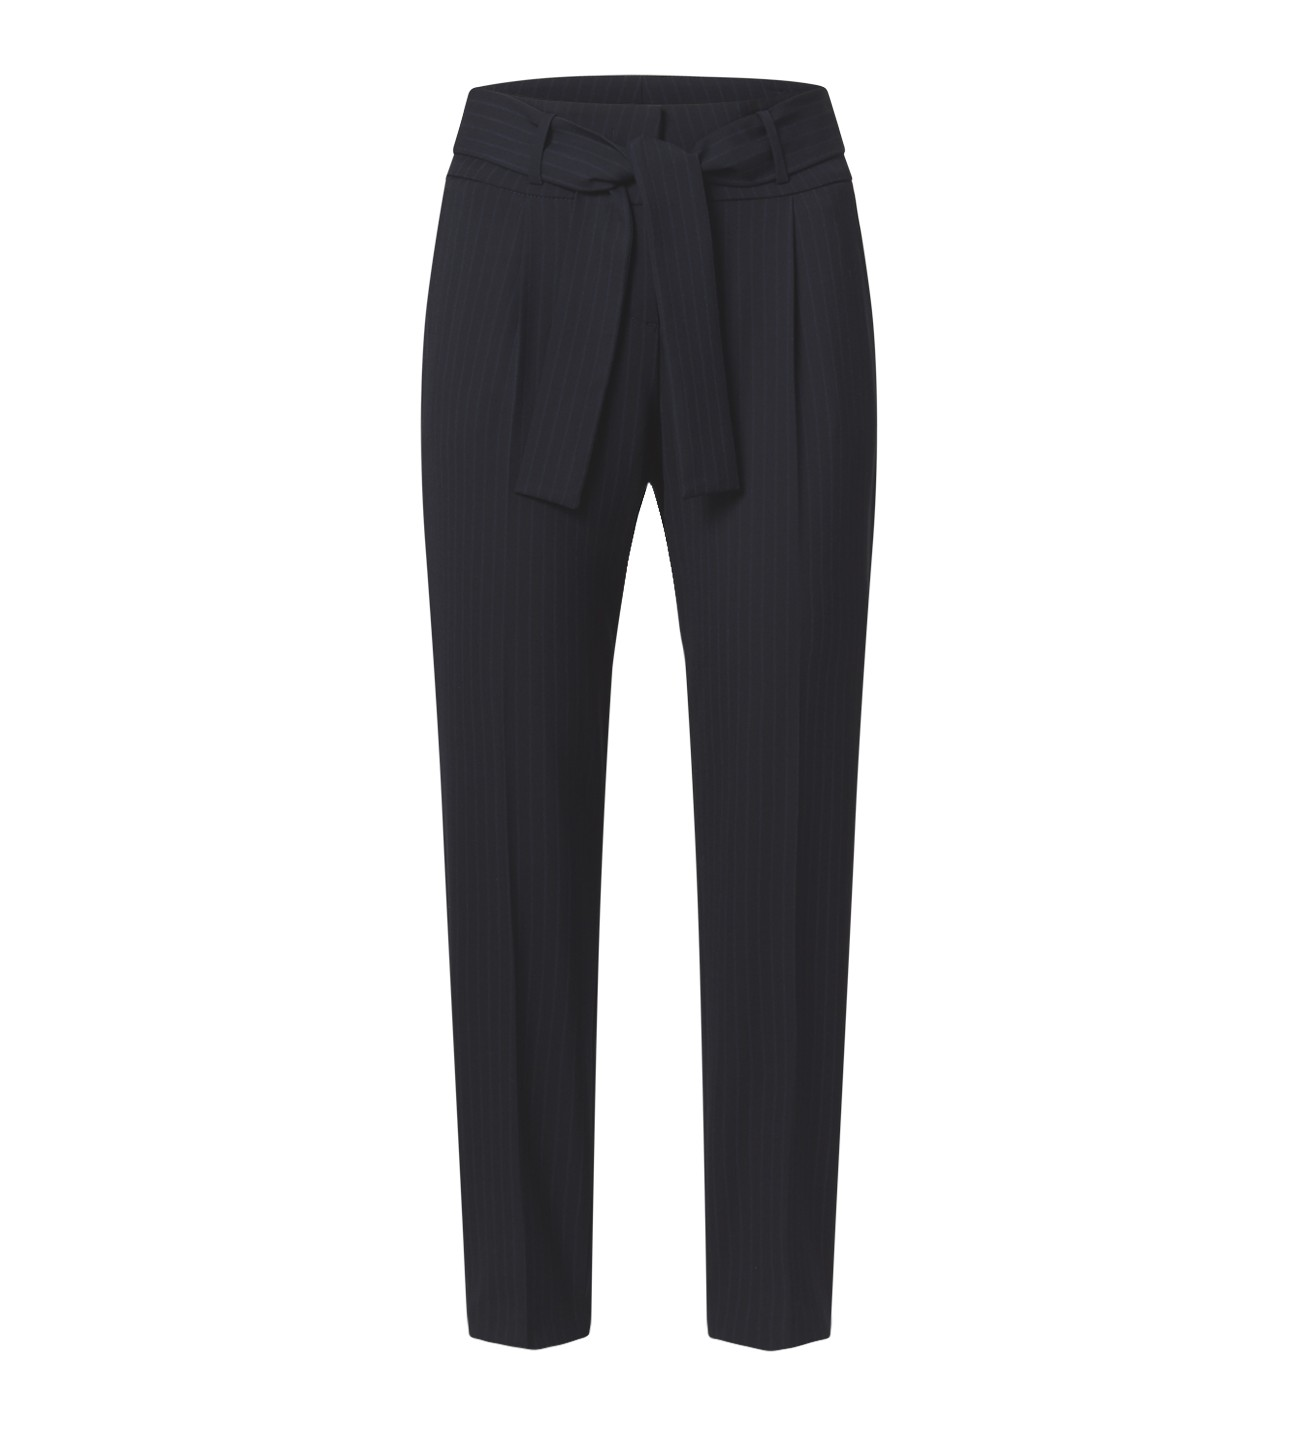 CAMBIO_PINSTRIPE_TROUSERS_WITH_BELT_MARIONA_FASHION_CLOTHING_WOMAN_SHOP_ONLINE_0275/00